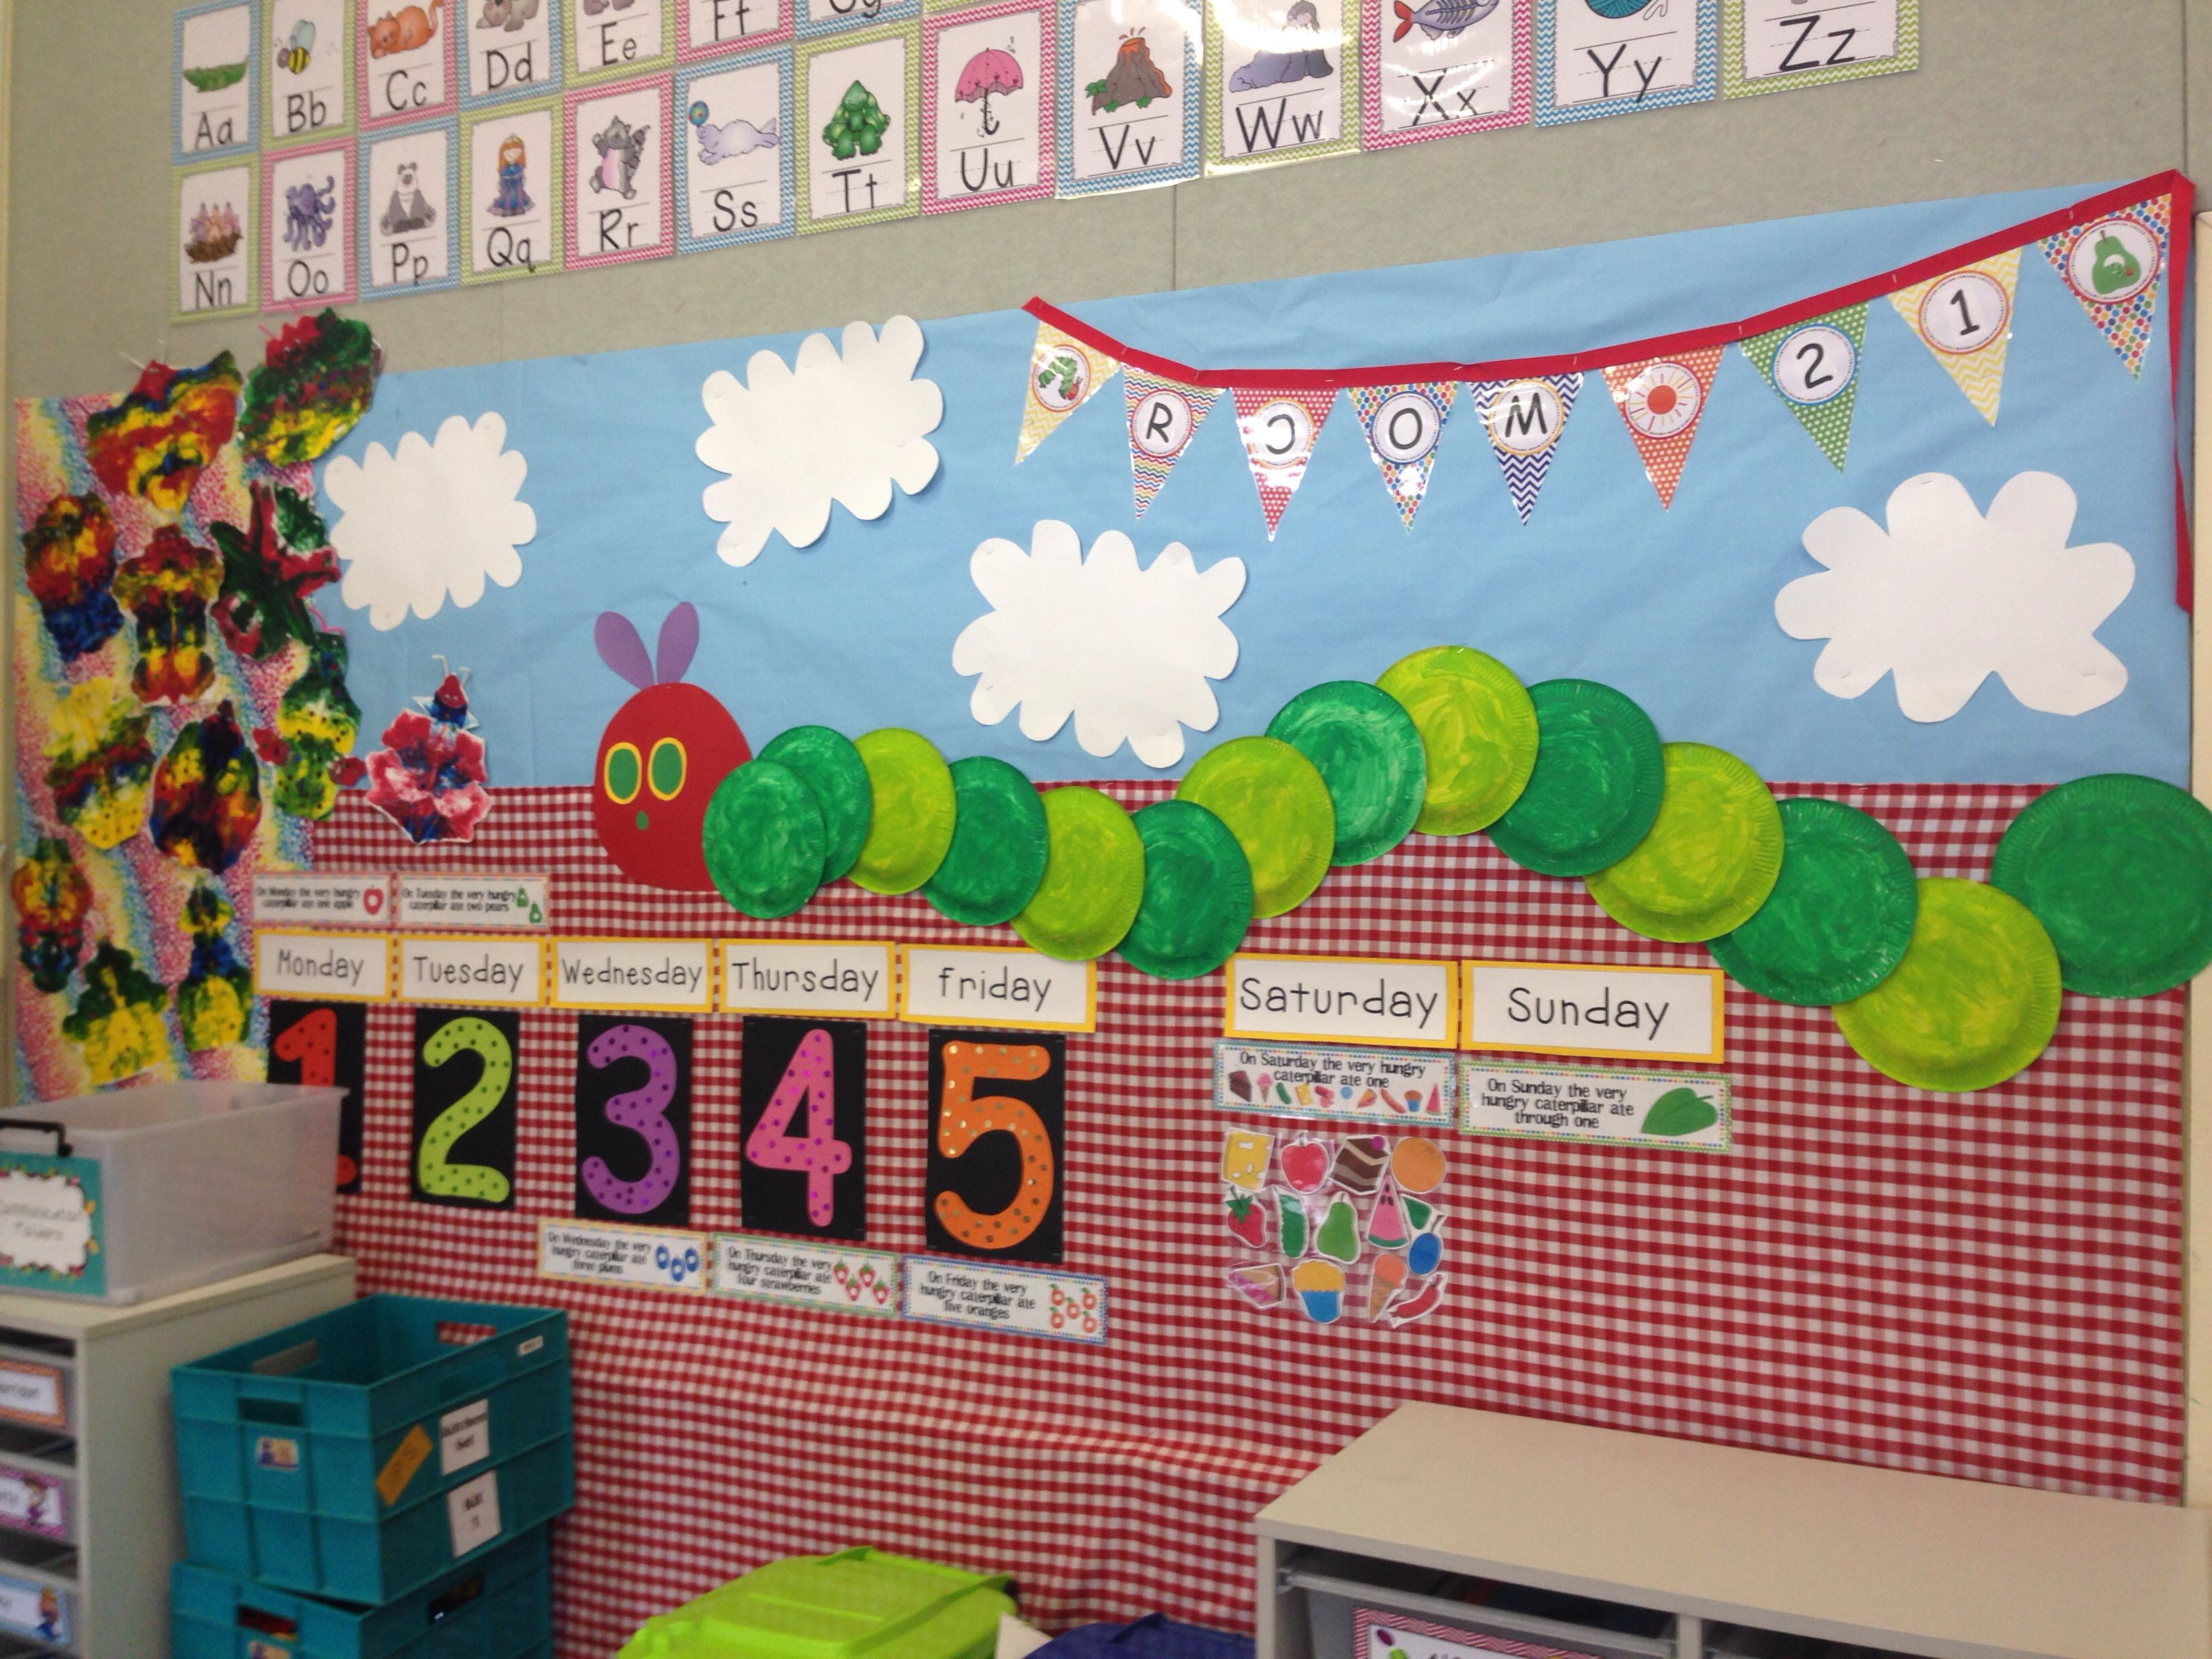 Classroom Ideas Display : The very hungry caterpillar display bulletin board